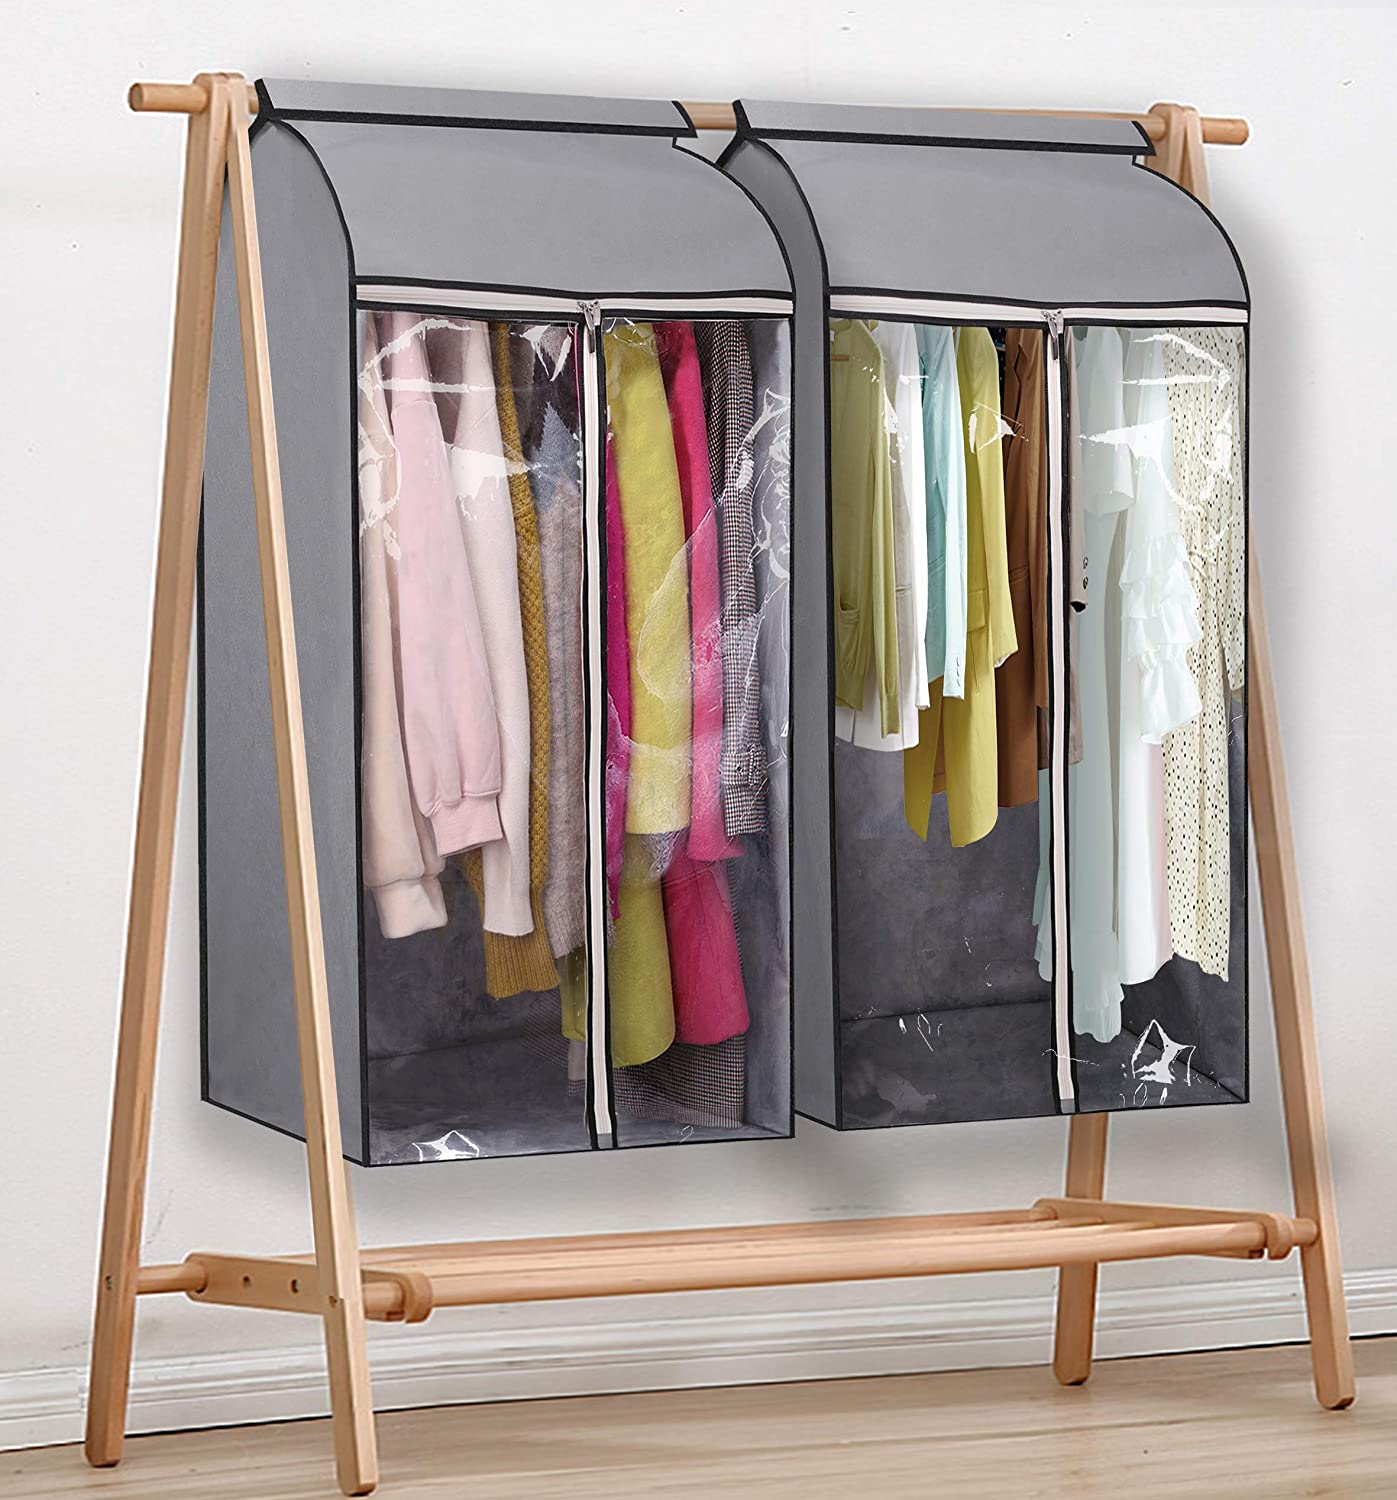 Frameless ,2 Packs MISSLO 43 Hanging Garment Bags for Storage Well Sealed Clothes Dust Cover with Large Clear Window and 3 Zippers Opening for Suit Coat Closet Rack